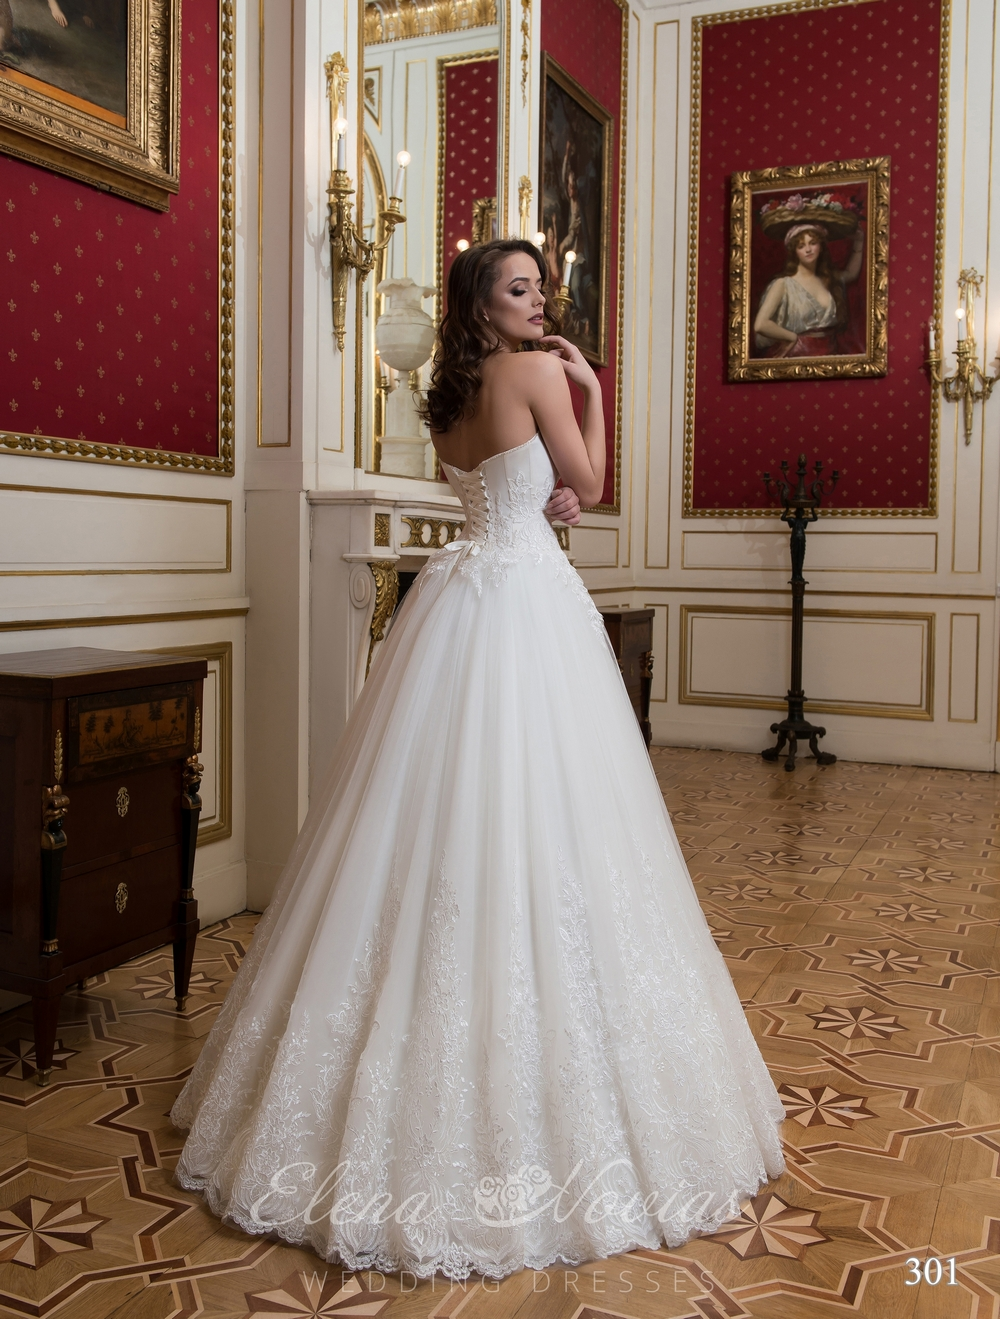 Wedding dress wholesale 301